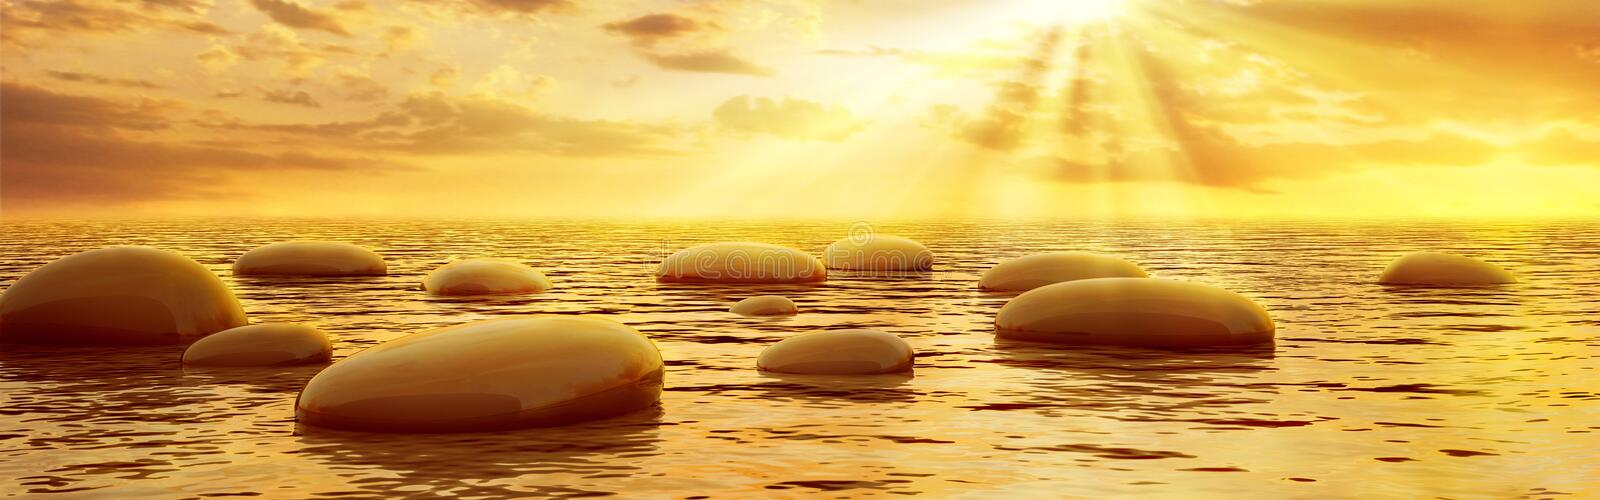 Smooth stones reflecting in water under sun beams stock photo